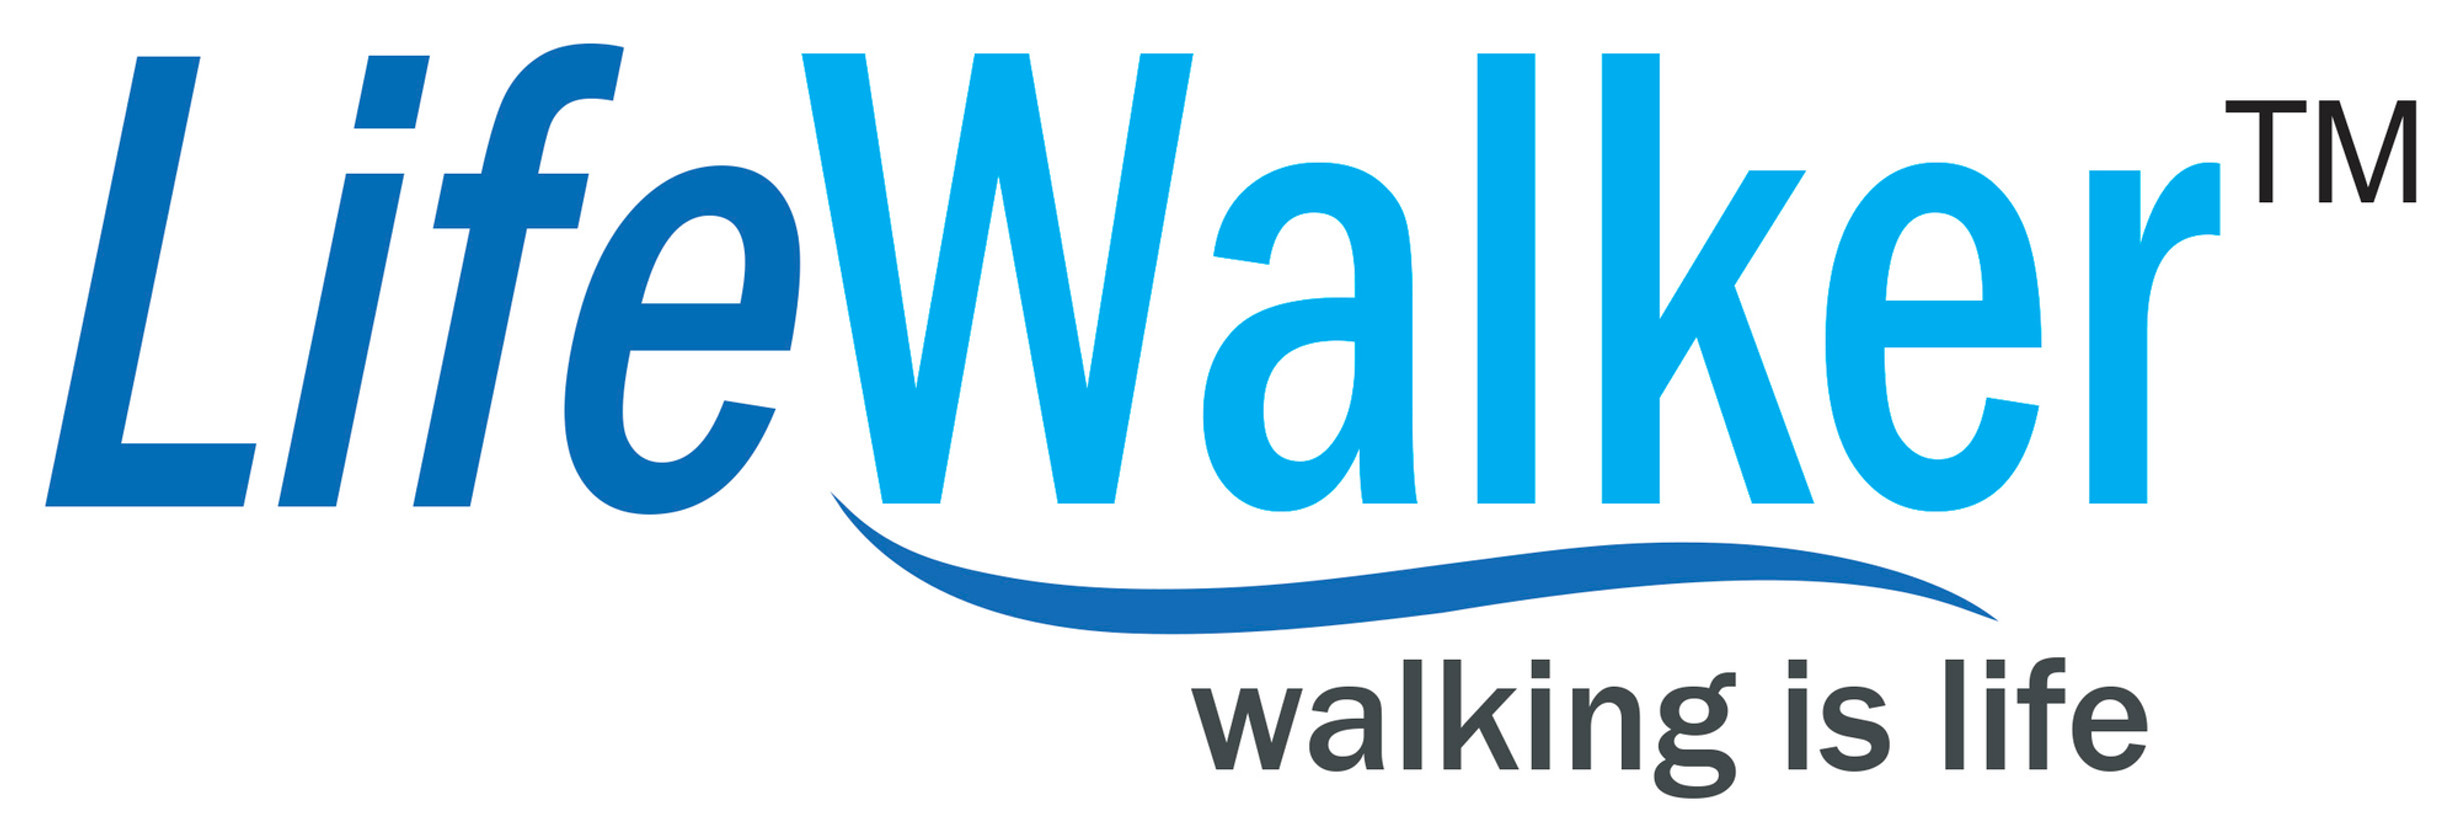 Upright Medical Walker | About Lifewalker Mobility Products